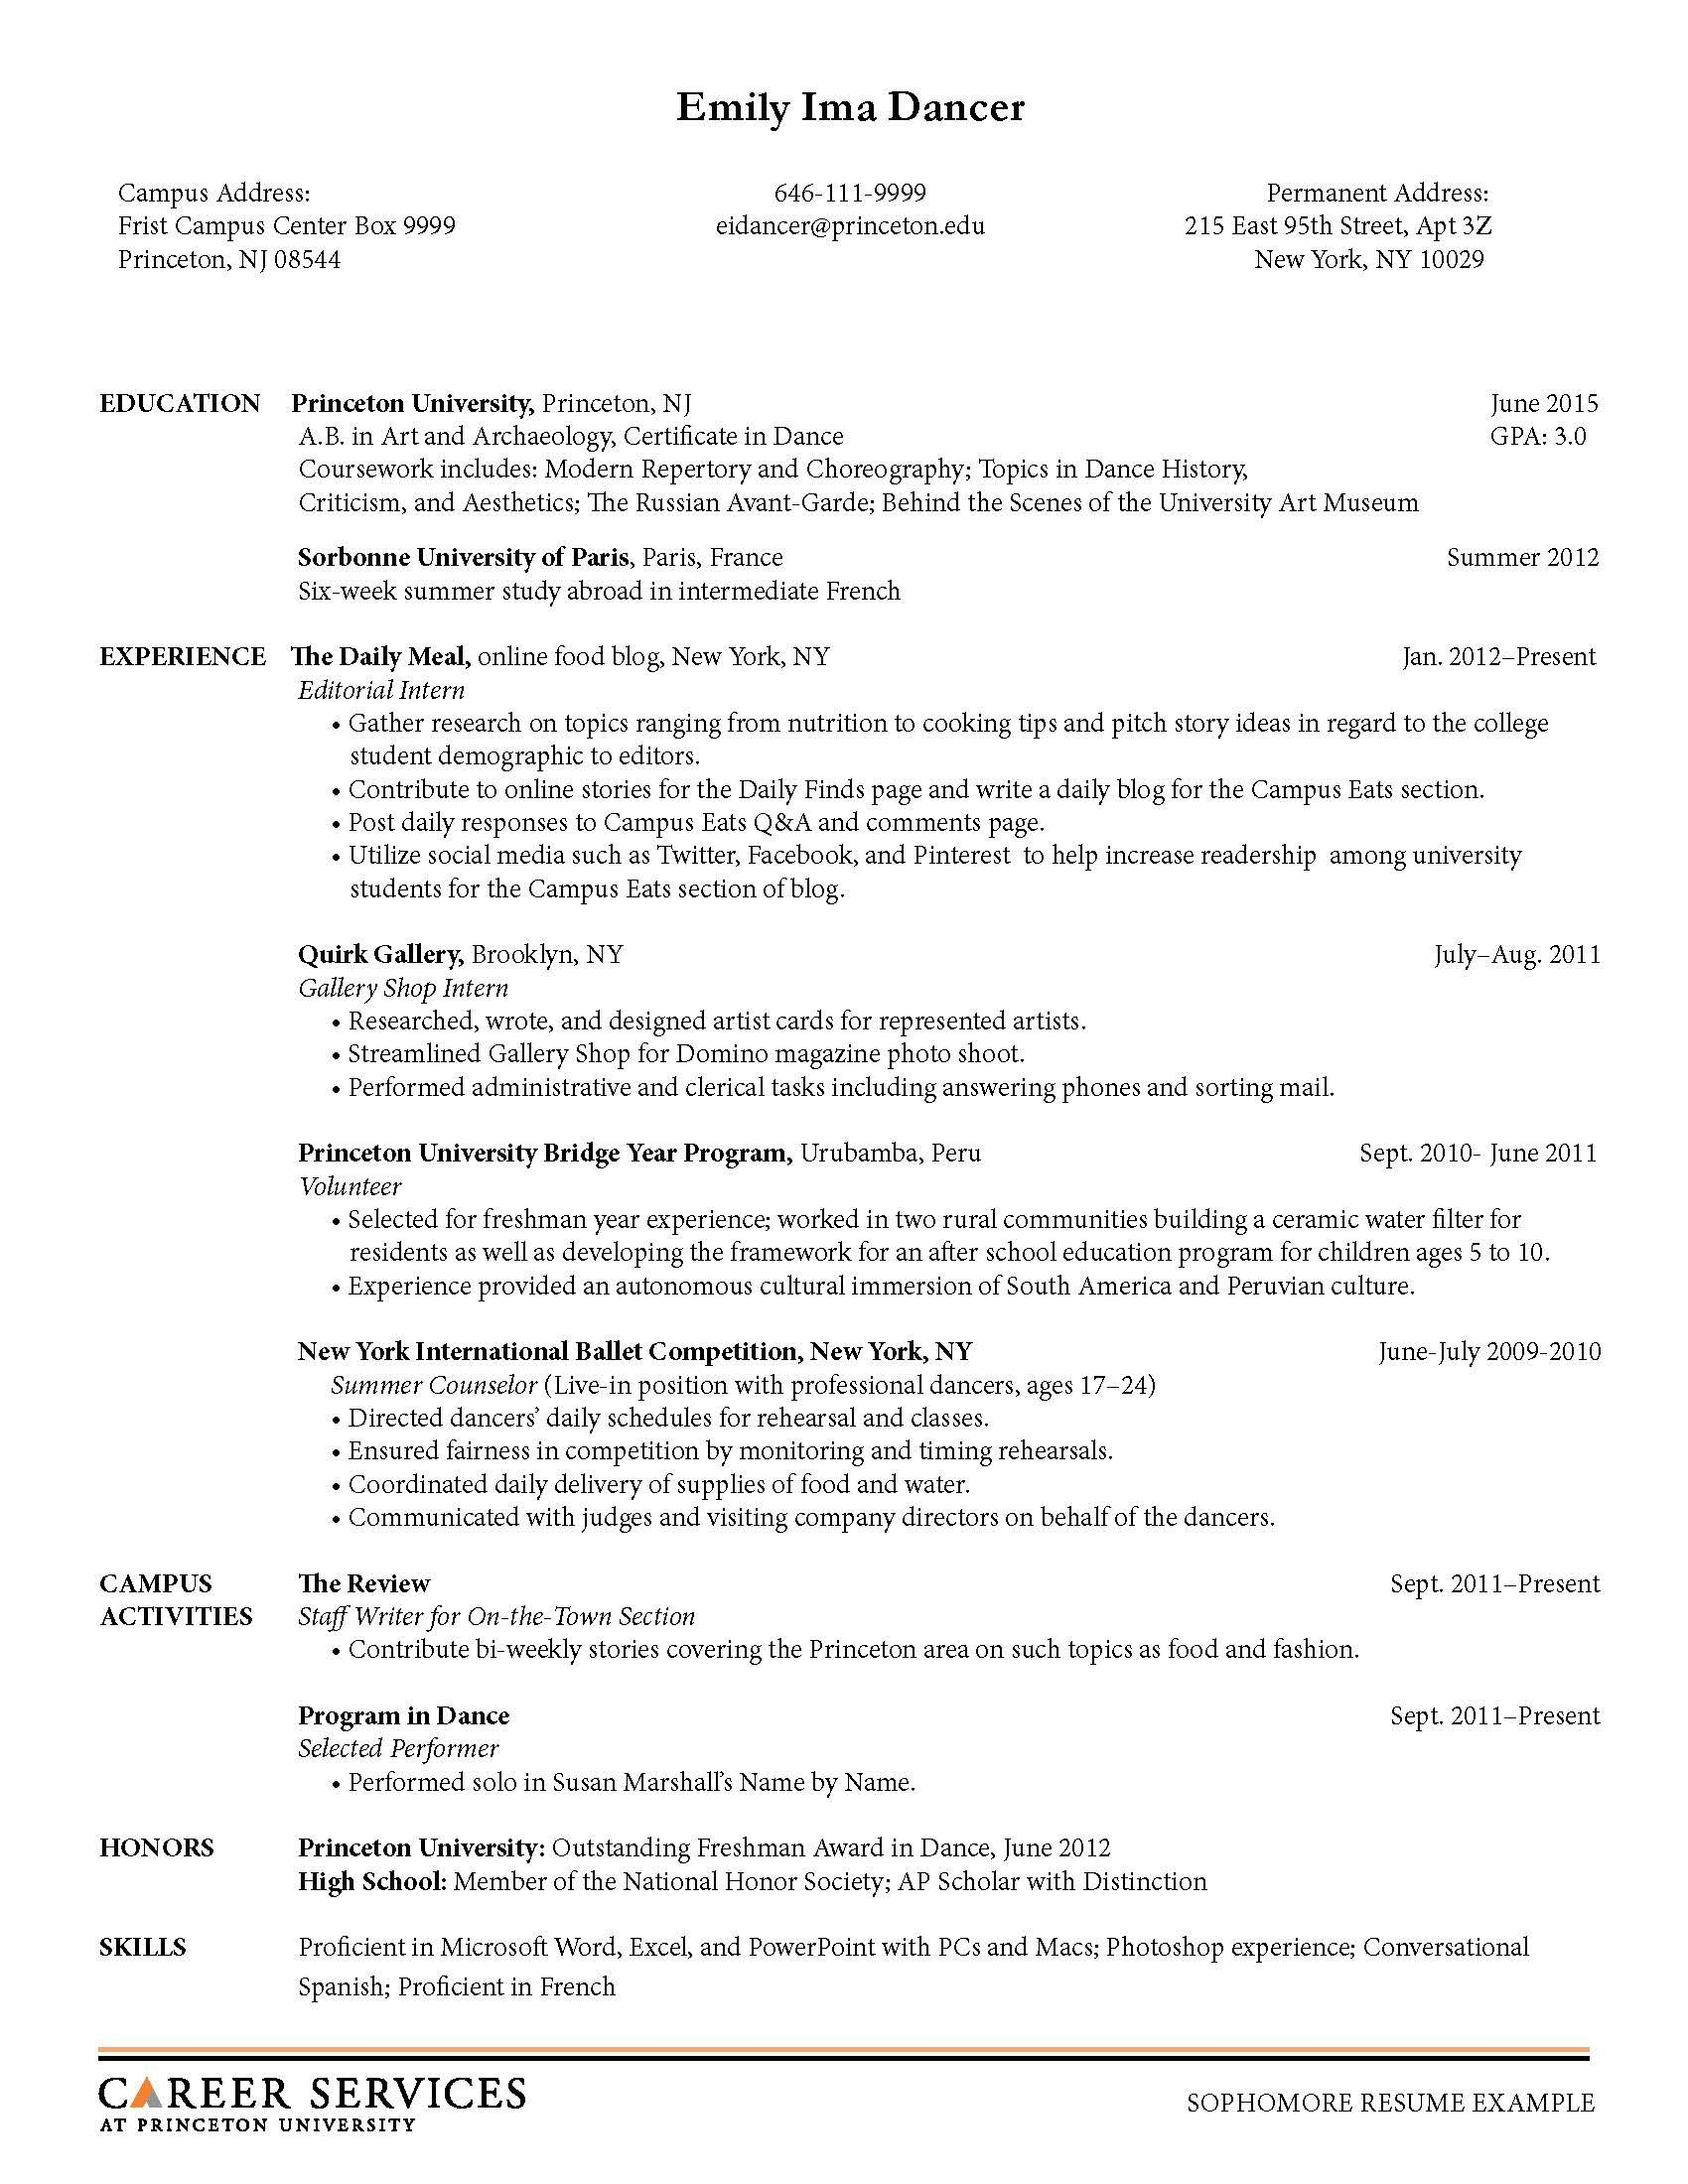 Opposenewapstandardsus  Winning Sample Resume Resume And Career On Pinterest With Outstanding A Cover Letter For A Resume Besides Anesthesiologist Resume Furthermore Bullet Points In Resume With Alluring Search Resumes On Linkedin Also What Is A Cover Letter To A Resume In Addition Mis Resume And Student Resume Examples First Job As Well As Keywords To Use In Resume Additionally Resume Example For Retail From Pinterestcom With Opposenewapstandardsus  Outstanding Sample Resume Resume And Career On Pinterest With Alluring A Cover Letter For A Resume Besides Anesthesiologist Resume Furthermore Bullet Points In Resume And Winning Search Resumes On Linkedin Also What Is A Cover Letter To A Resume In Addition Mis Resume From Pinterestcom